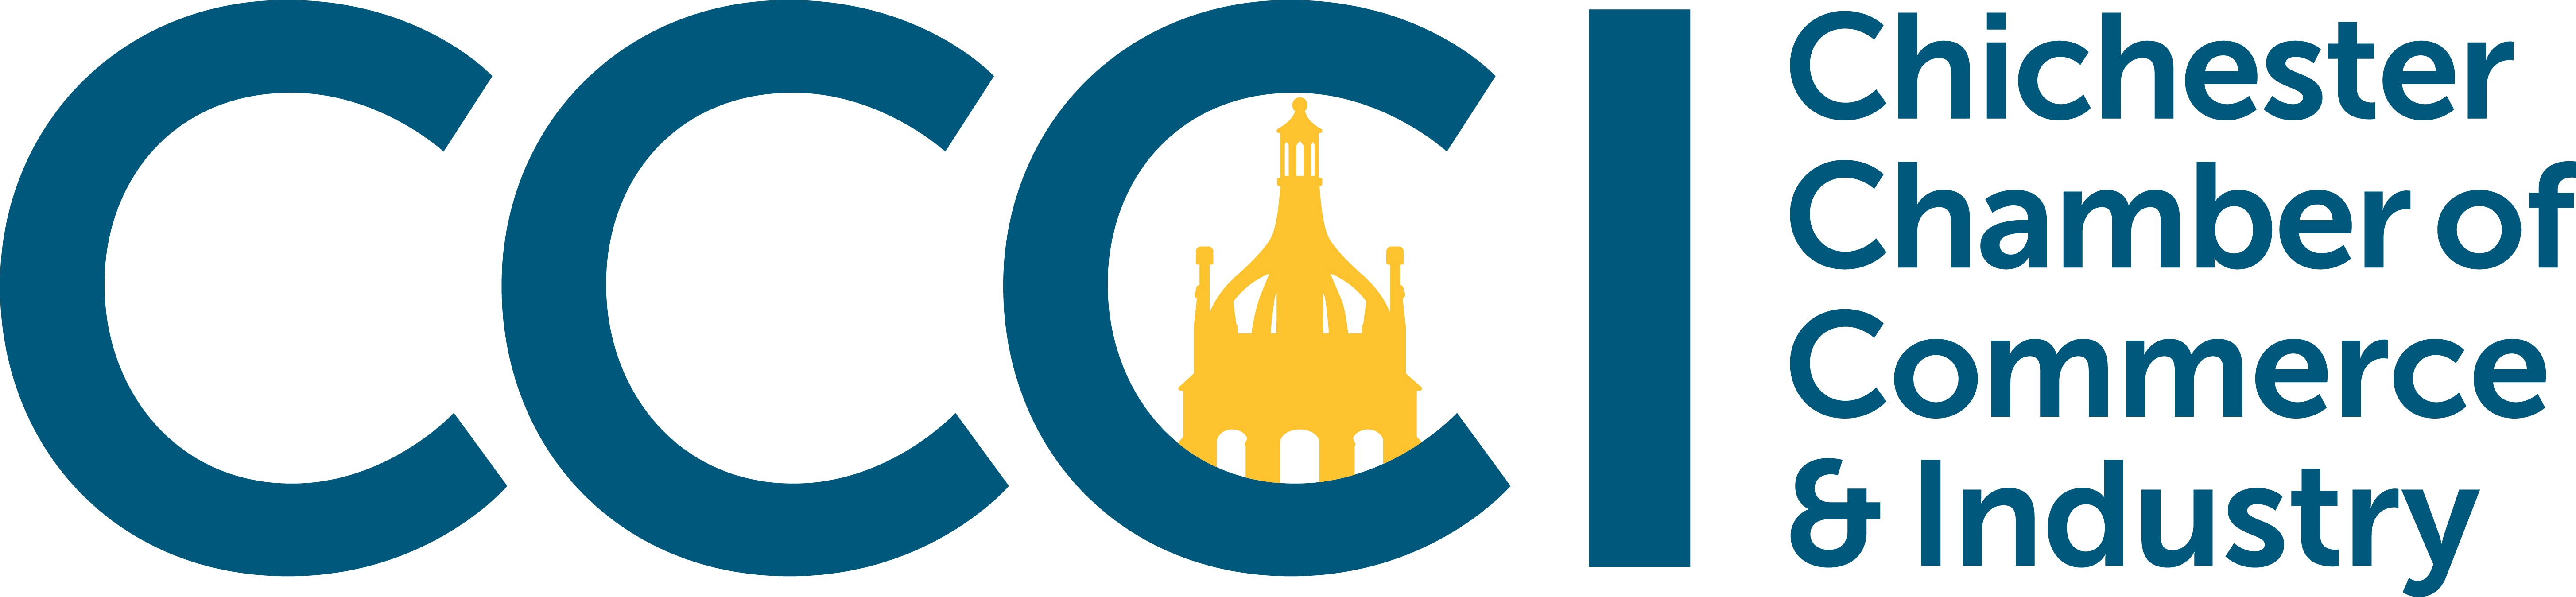 Chichester Chamber of Commerce, B2B Expos